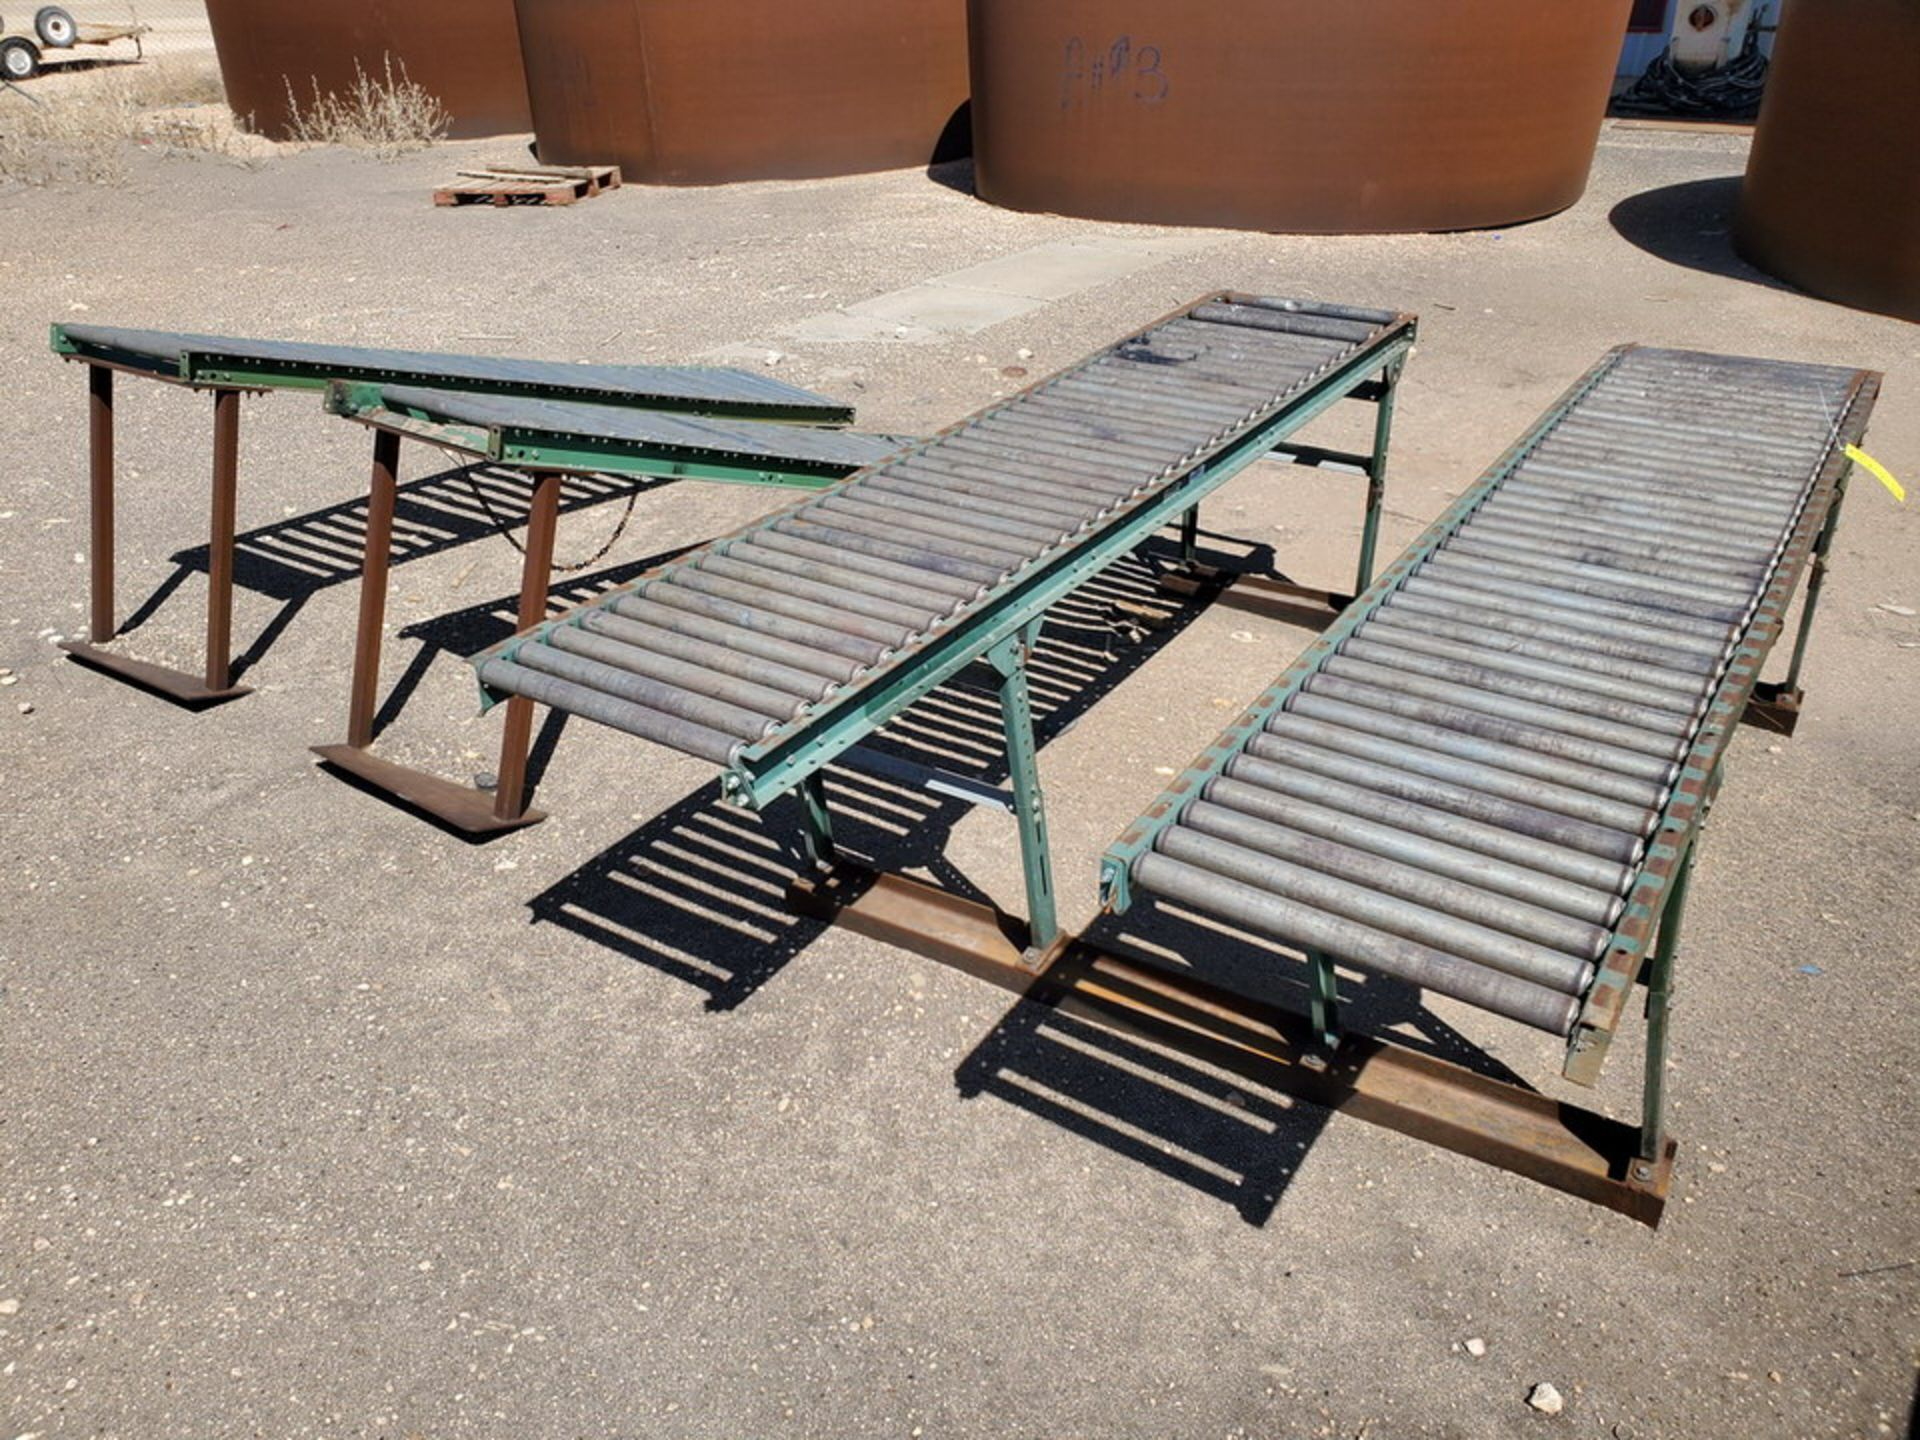 "Ashland & Other (6) Roller Conveyor 10' x 24"" - Image 6 of 7"